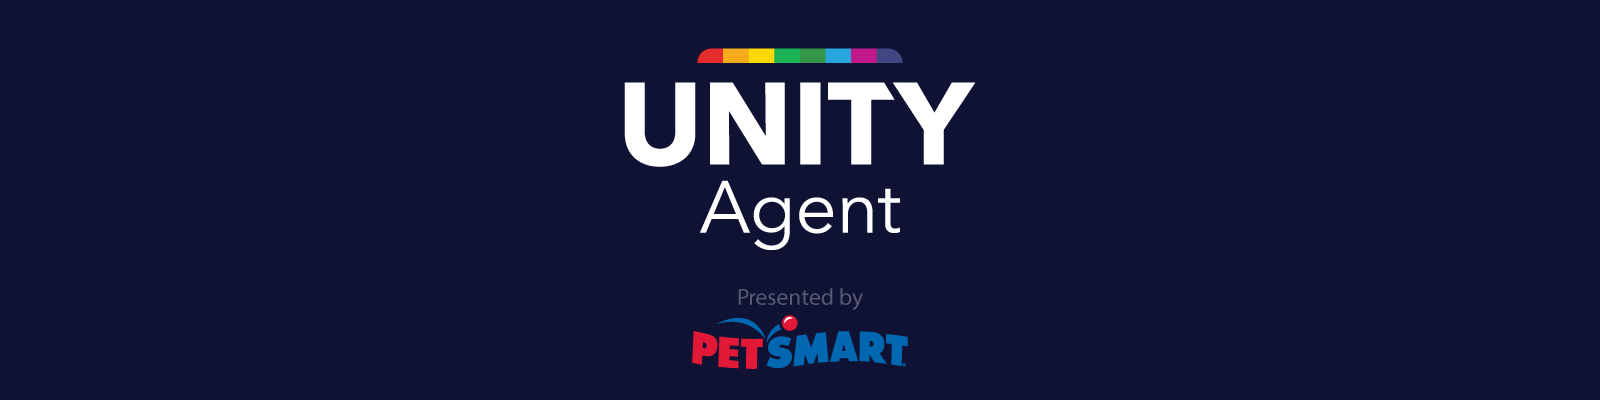 Banner - Unity Agent by PetSmart